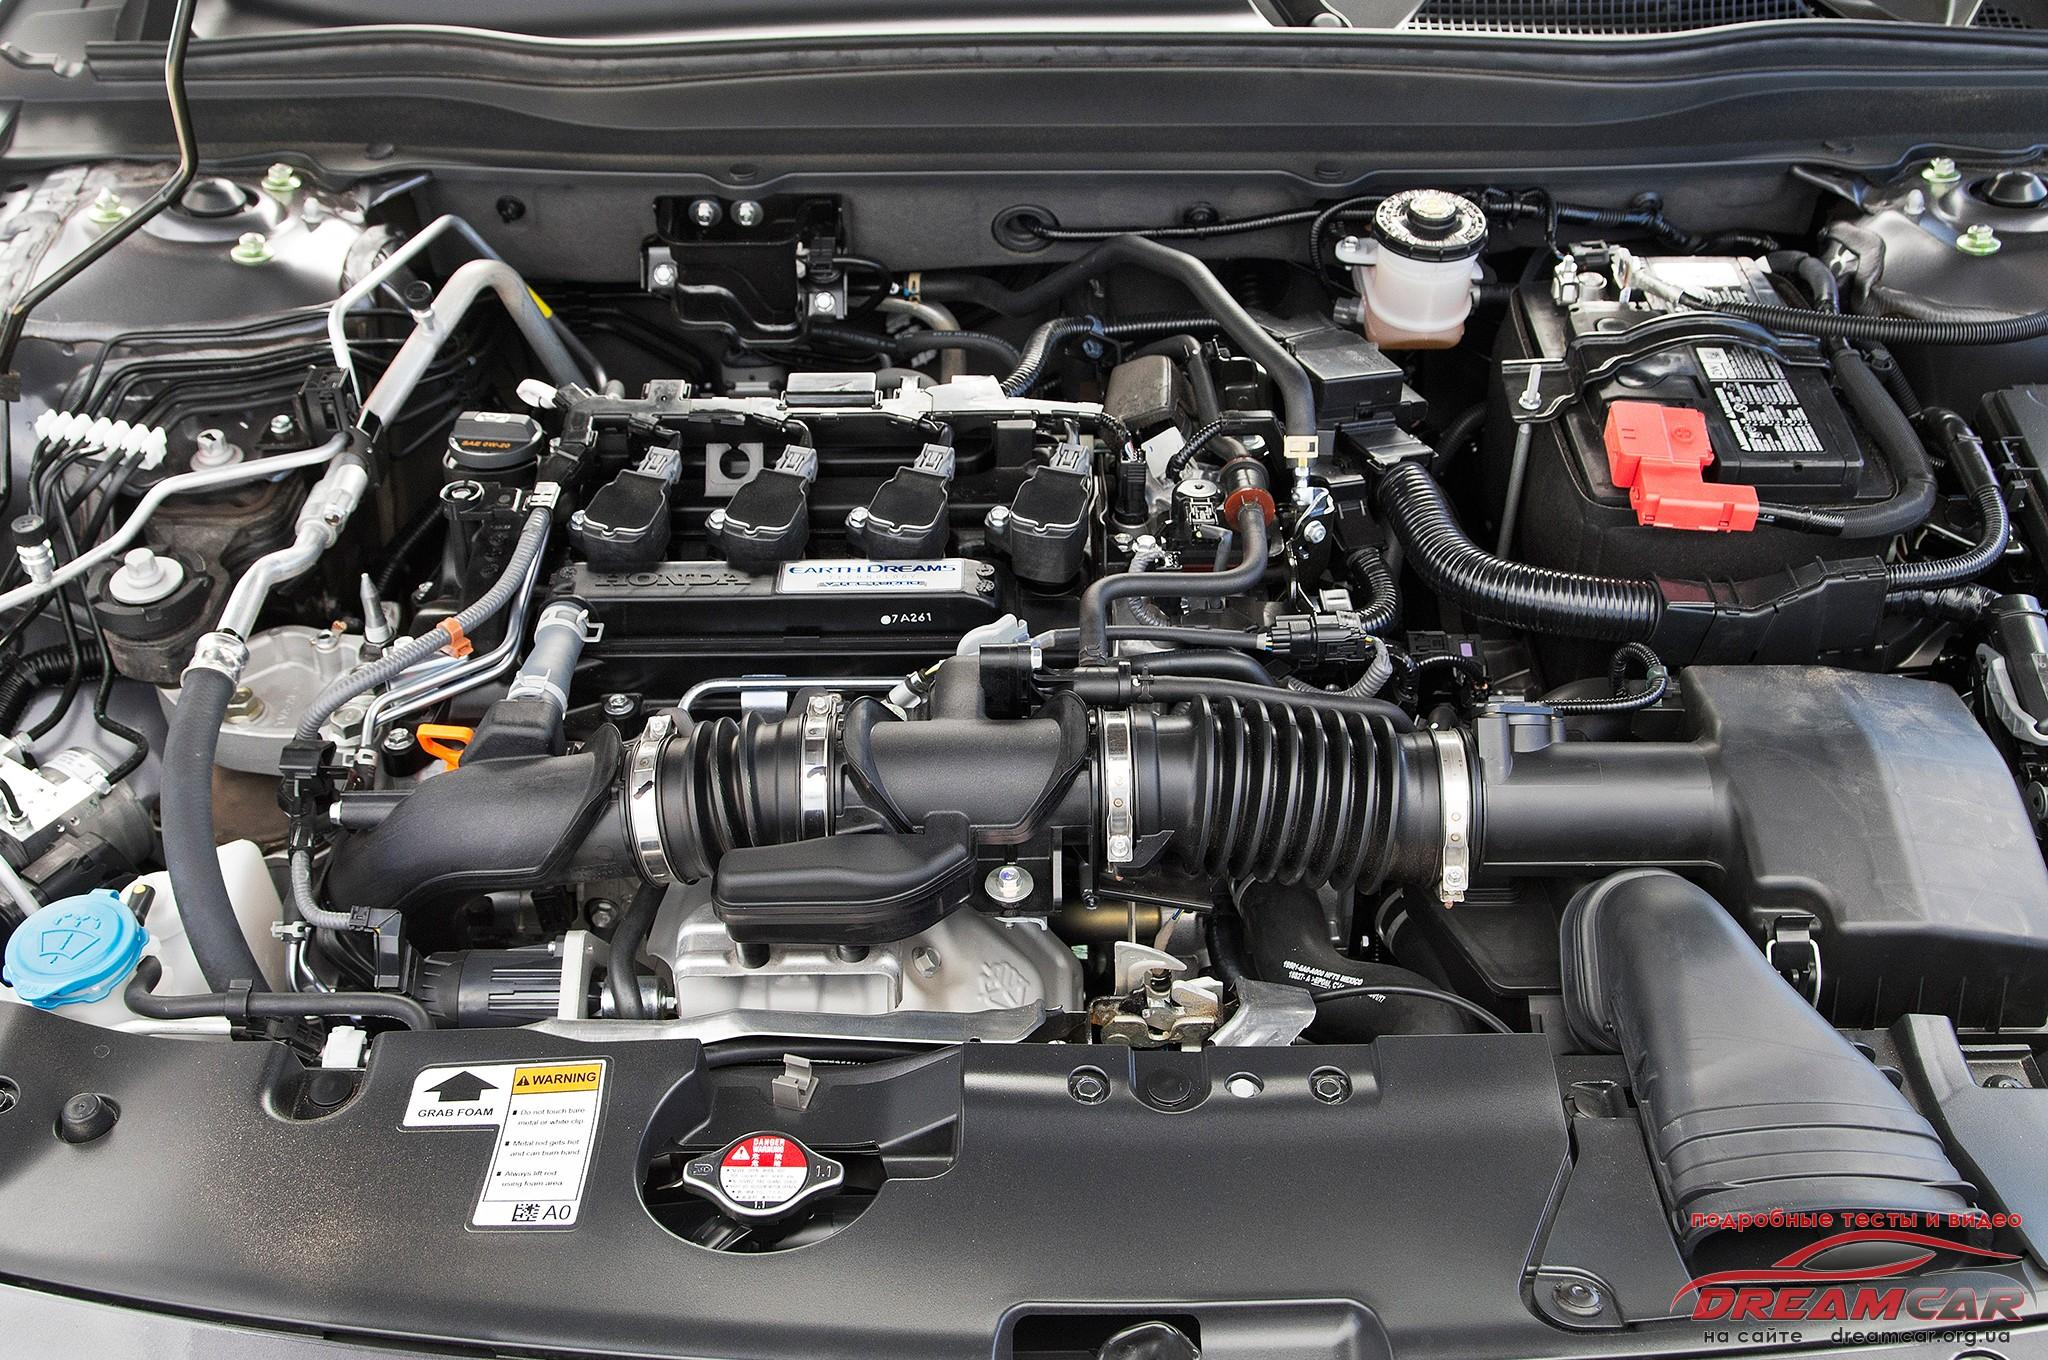 2018-Honda-Accord-1.5T-EX-engine